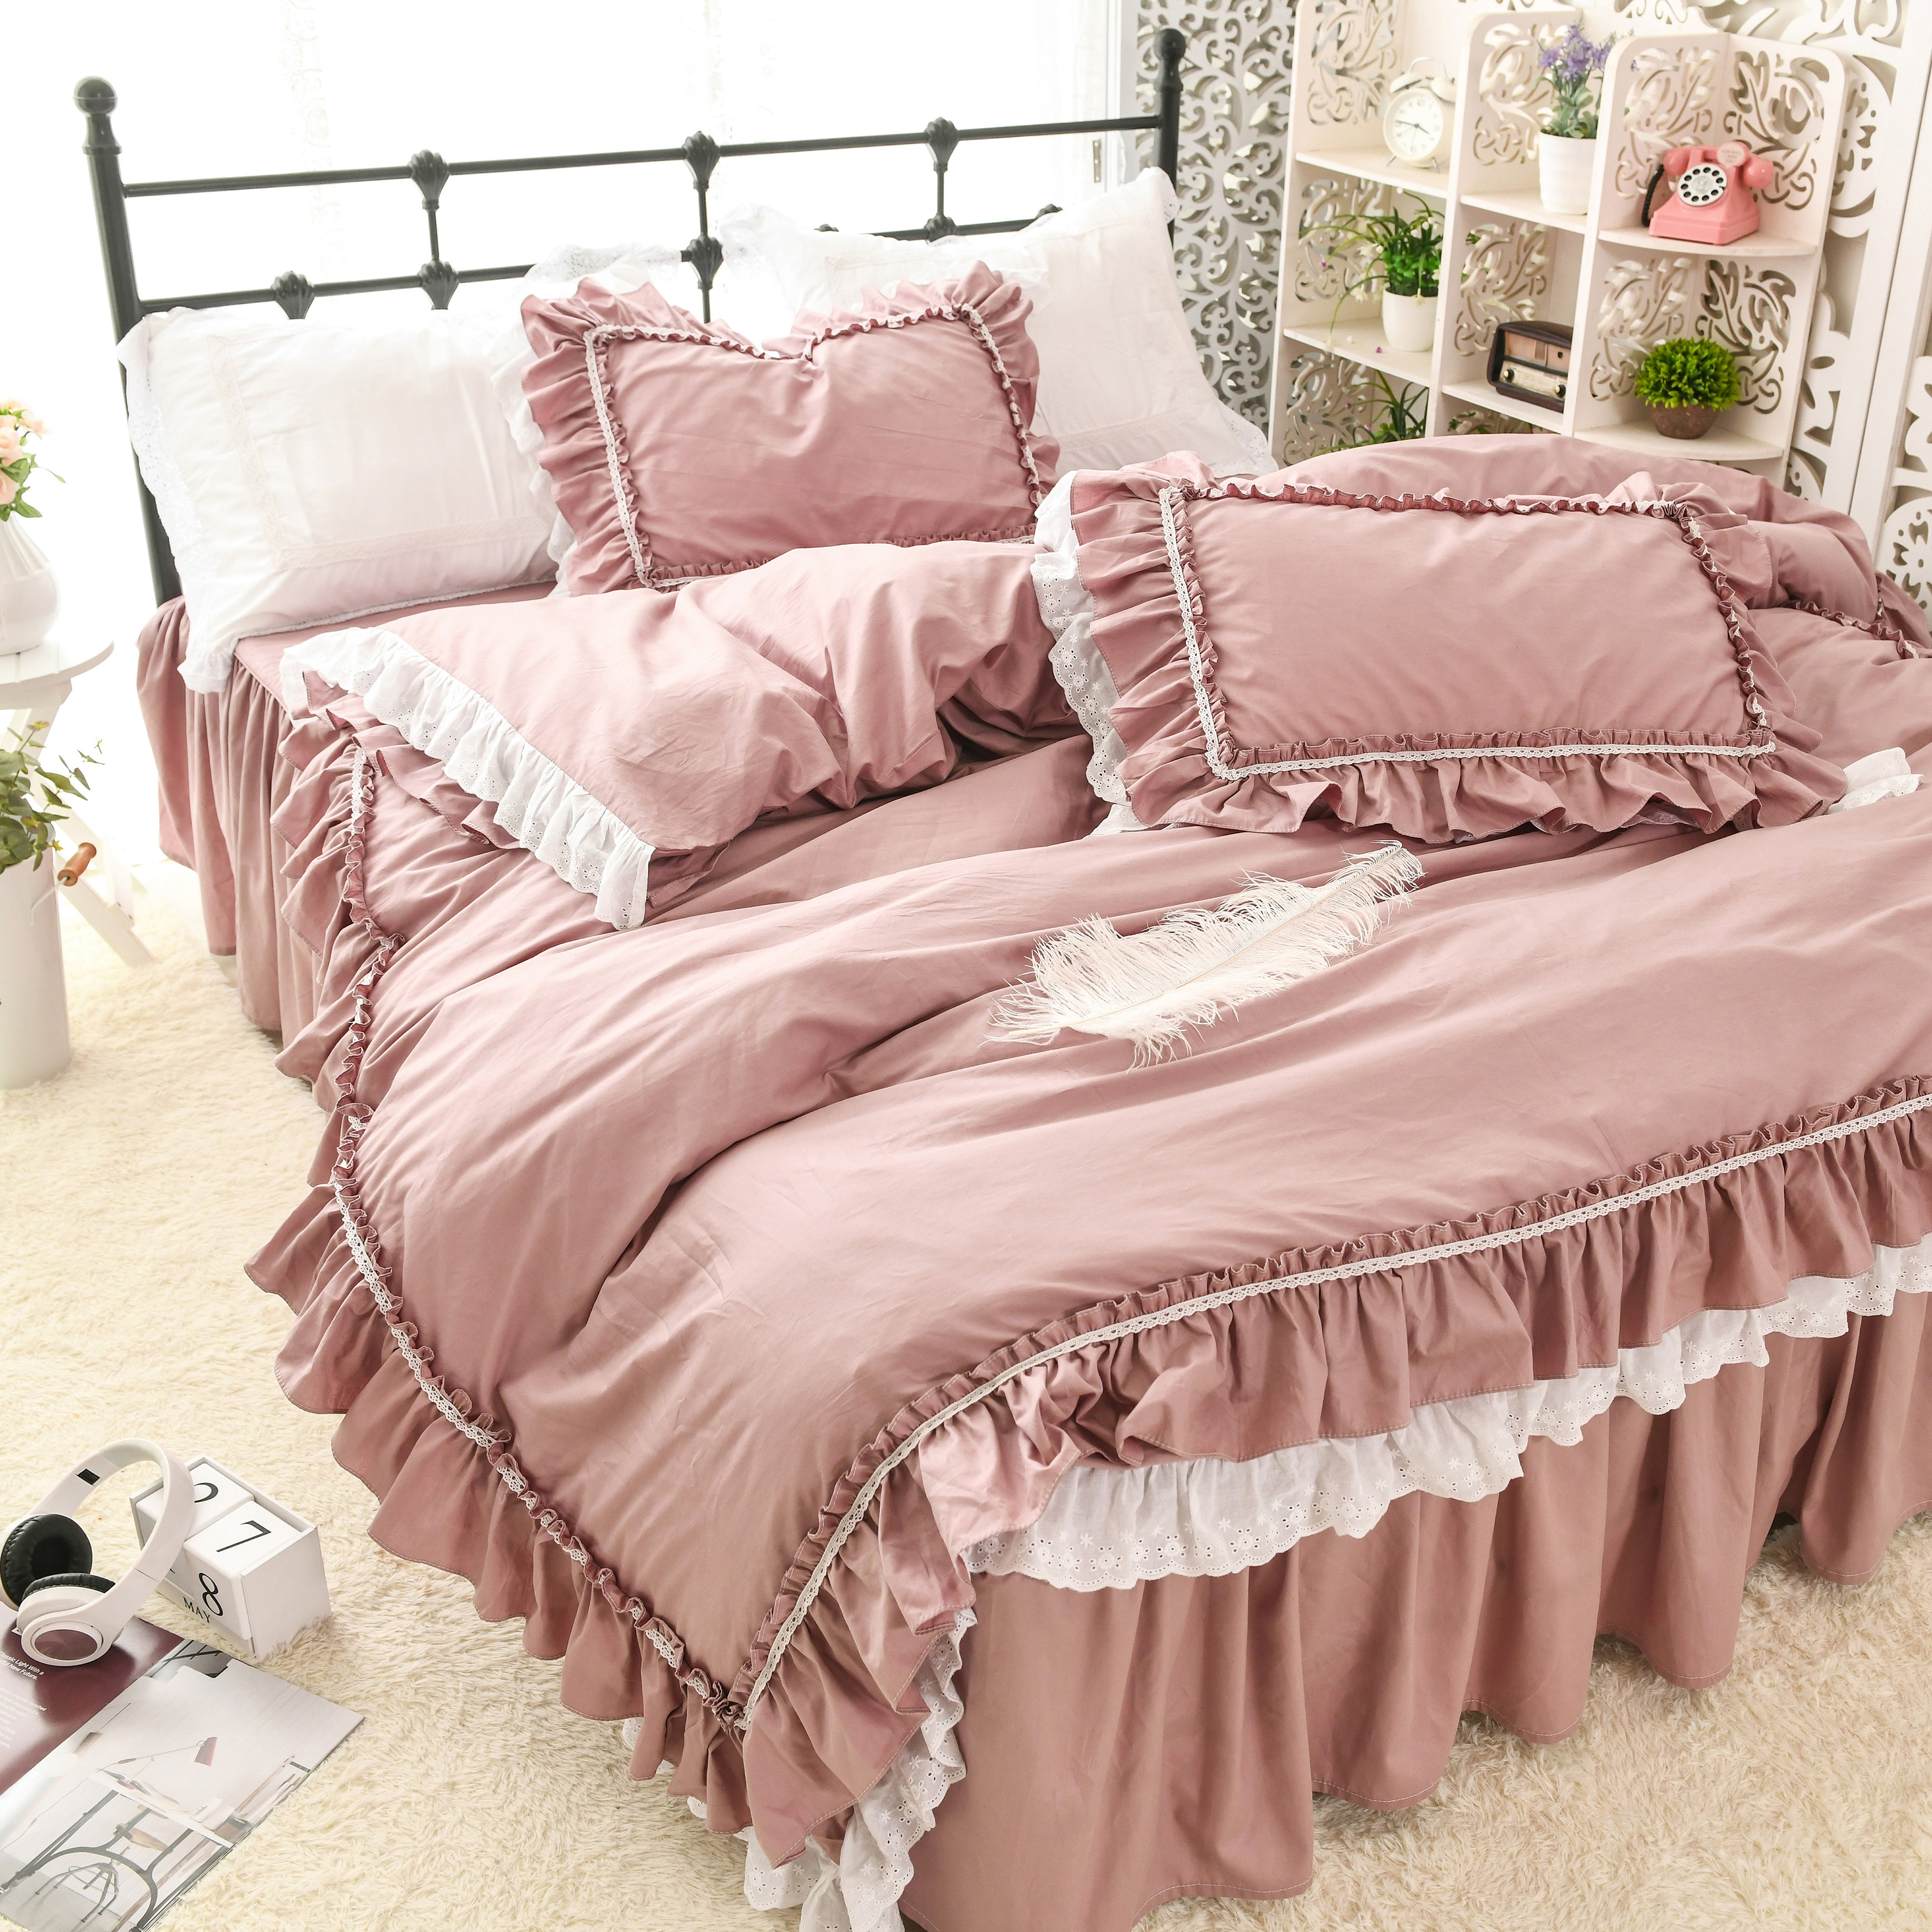 Korean version of the bed skirt style cotton lace embroidered lace quilt cover cotton solid color princess girl heart beddingKorean version of the bed skirt style cotton lace embroidered lace quilt cover cotton solid color princess girl heart bedding